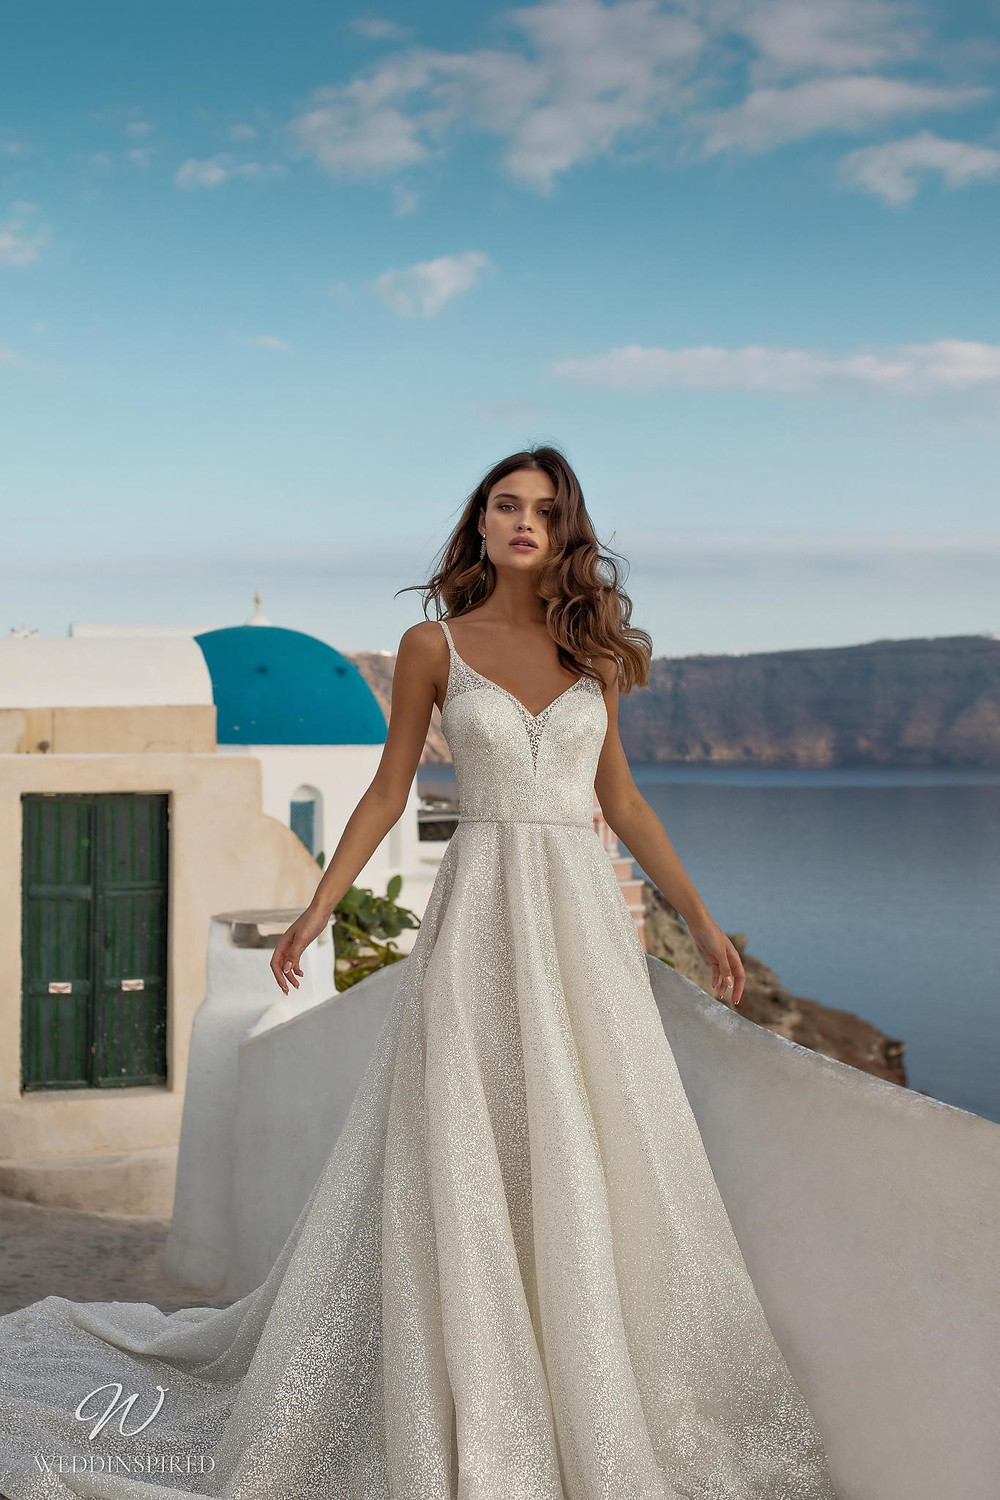 A Ricca Sposa sparkly silver A-line wedding dress with straps and a sweetheart neckline